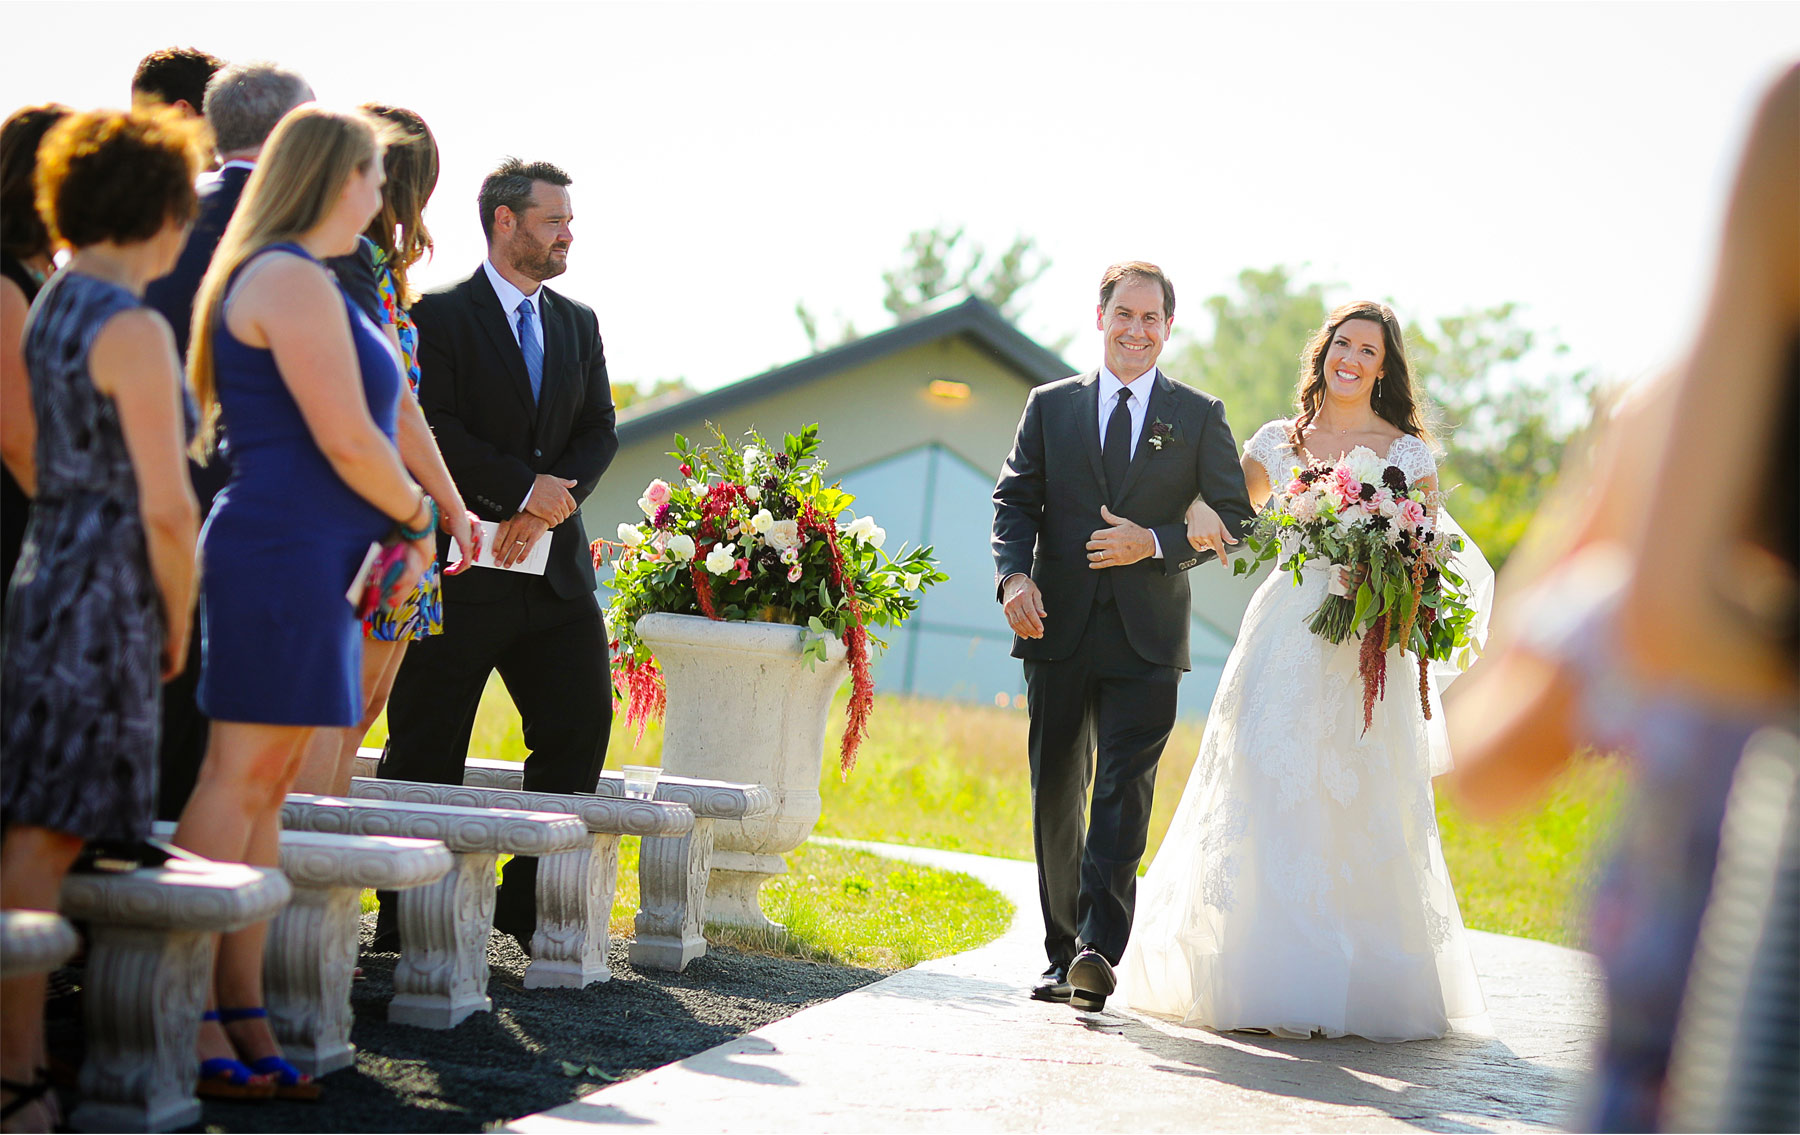 11-Weding-by-Vick-Photography-Minneapolis-Minnesota-Bavaria-Downs-Outdoor-Summer-Ceremony-Bride-Father-Rebecca-and-Mark.jpg